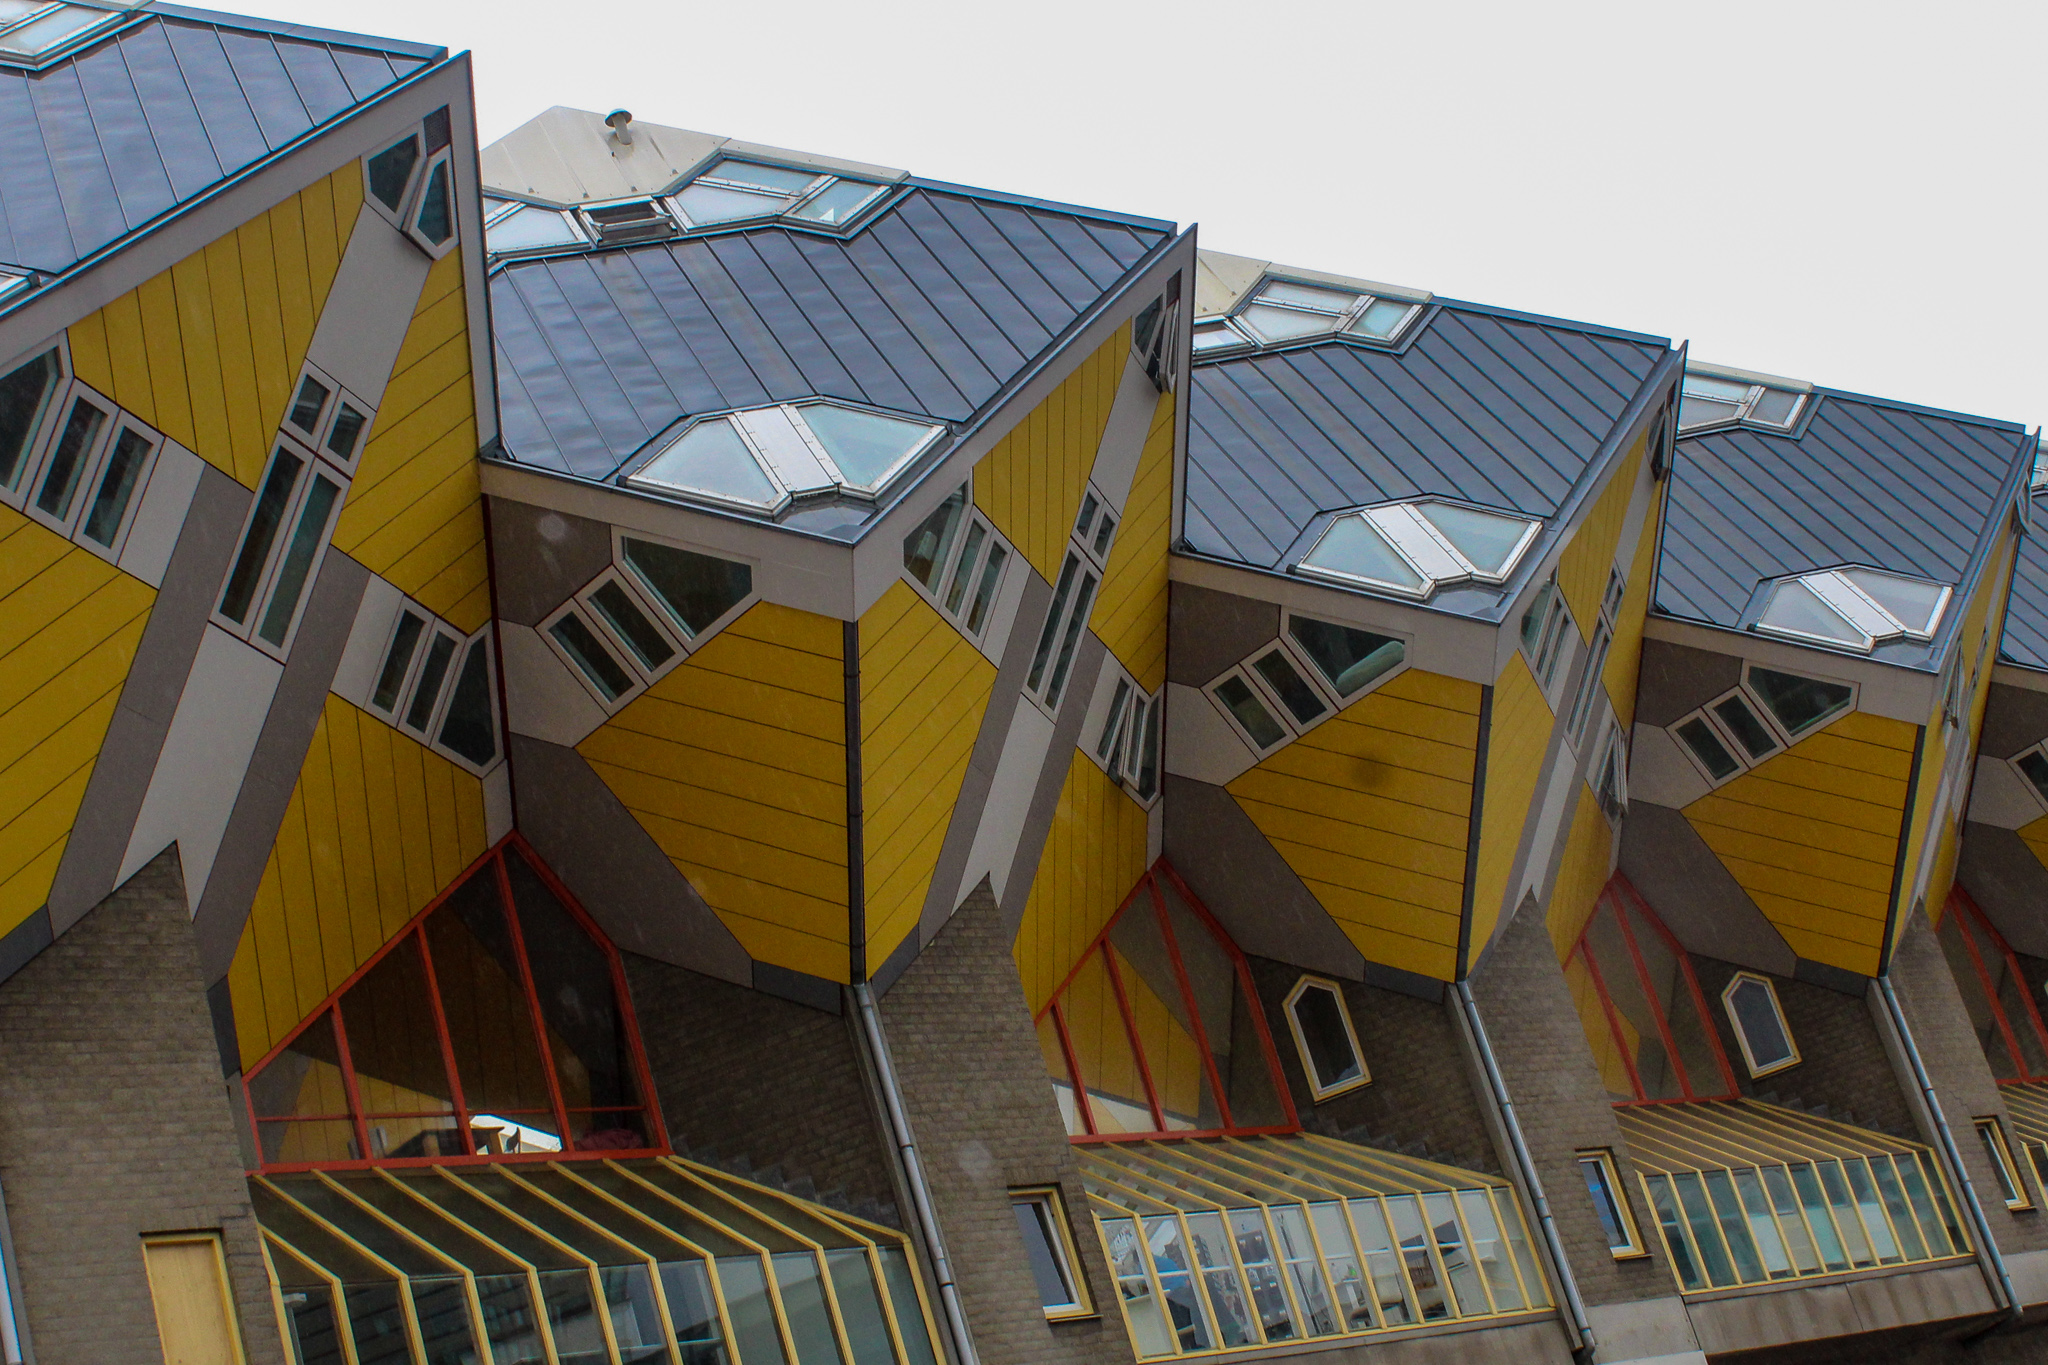 netherlands 5 days itinerary: see modern homes in rotterdam